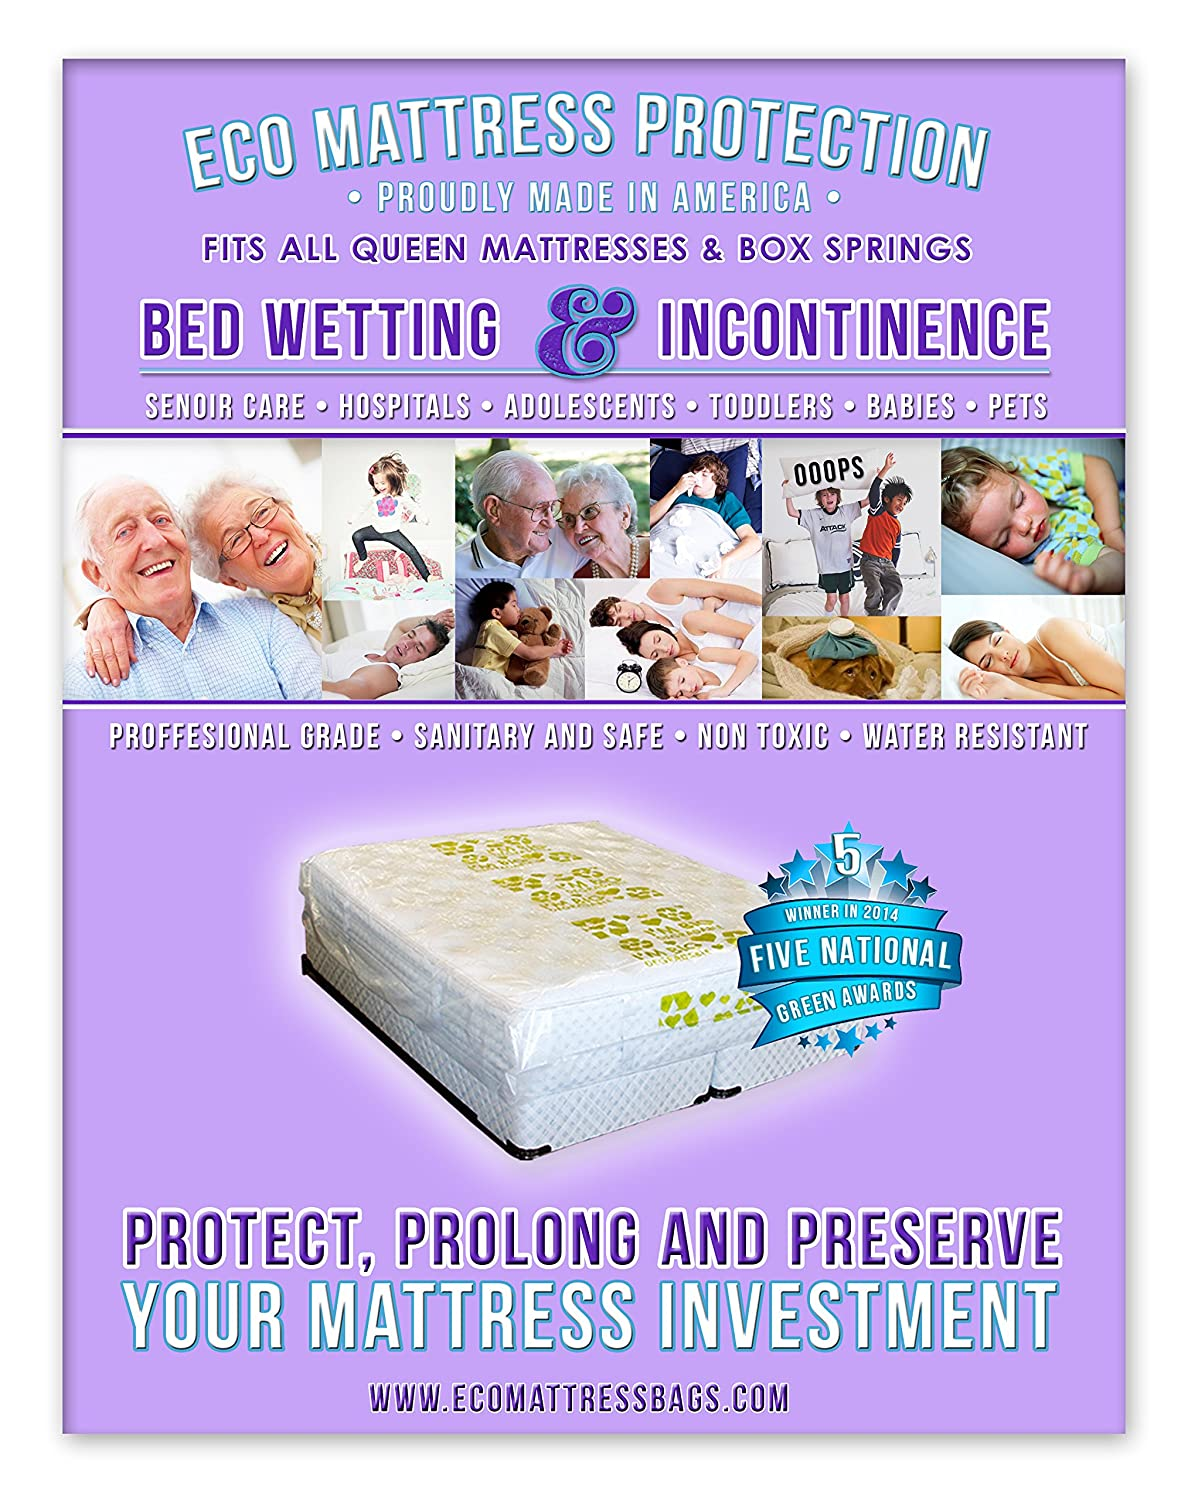 1 Queen Size Mattress Protector Designed for Bed Wetting and Incontinence. Fits All Queen and Full Size Mattresses. Compatible with All Pillow Tops and Box Springs. Winner of 5 National Green Awards in 2014. Professional Hosp